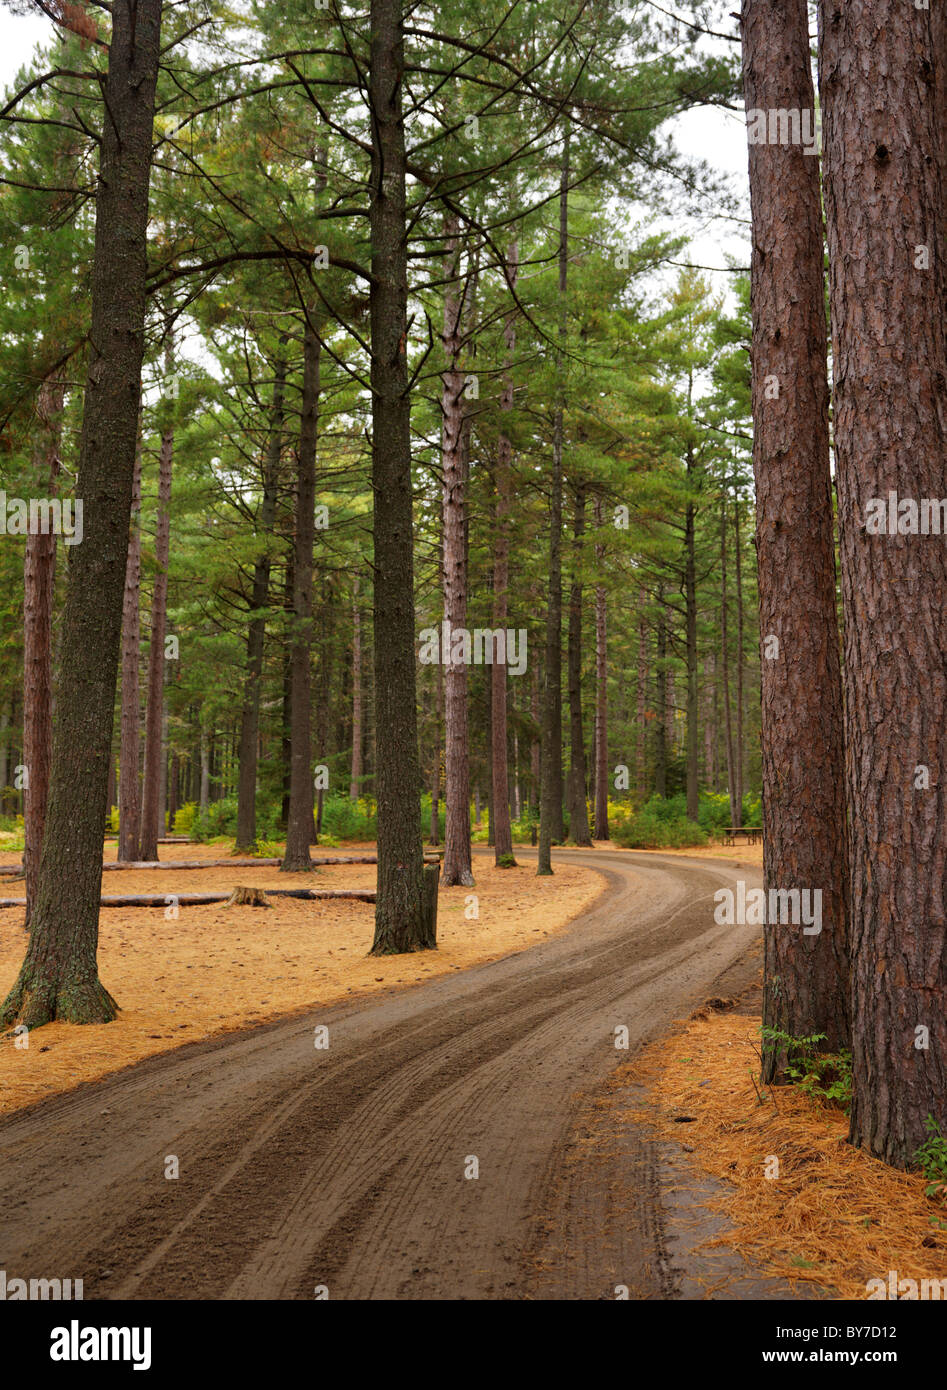 Winding unpaved road through beautiful fall nature scenery. Campground at Algonquin Provincial Park, Ontario, Canada. - Stock Image